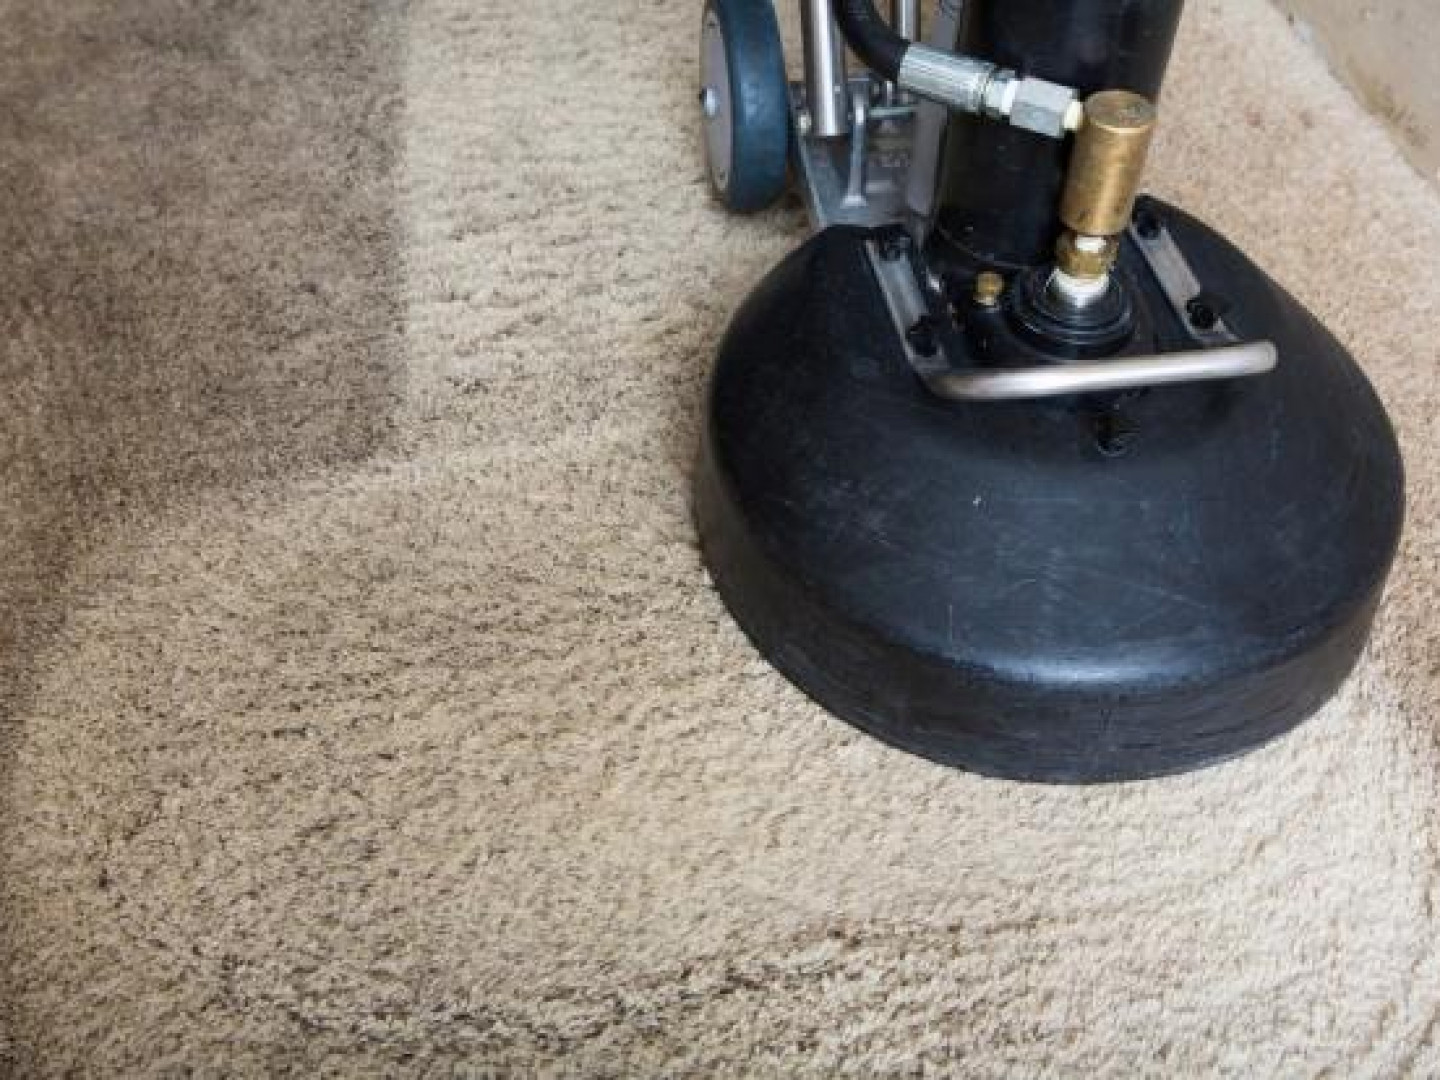 Find a Commercial Carpet Cleaning Service in Ravensdale, Covington, Maple Valley & Kent, WA